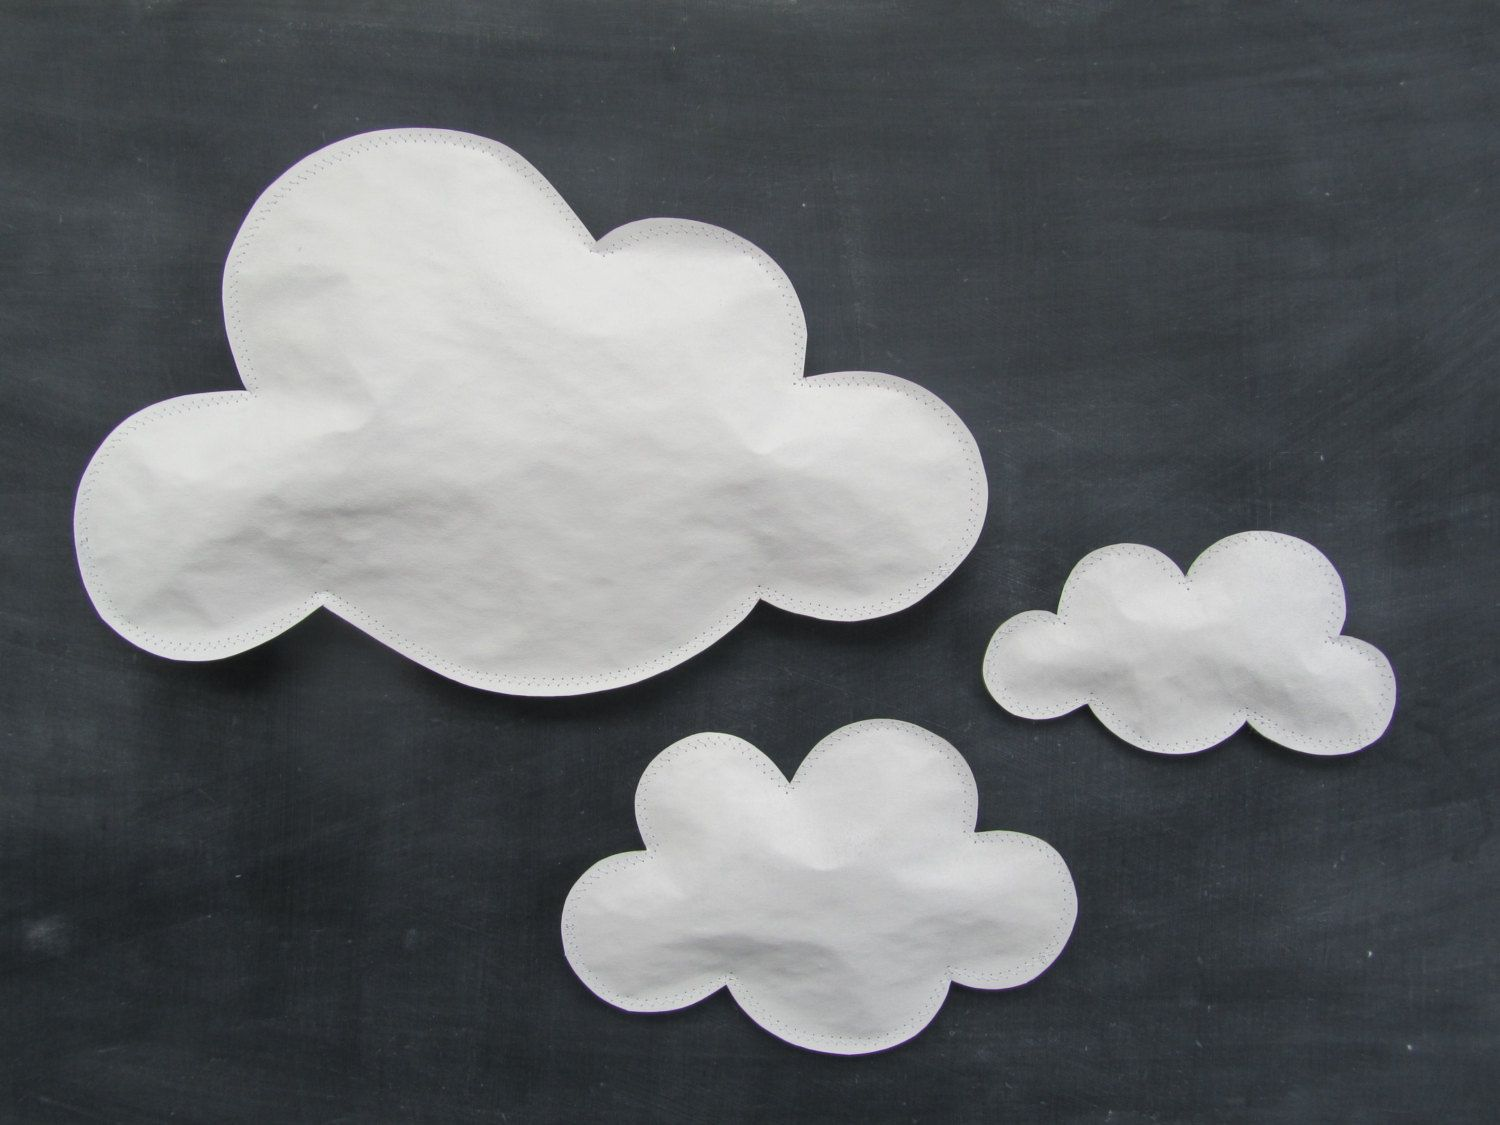 Paper Clouds Wall Decor : Cloud art set of three white paper clouds for wall